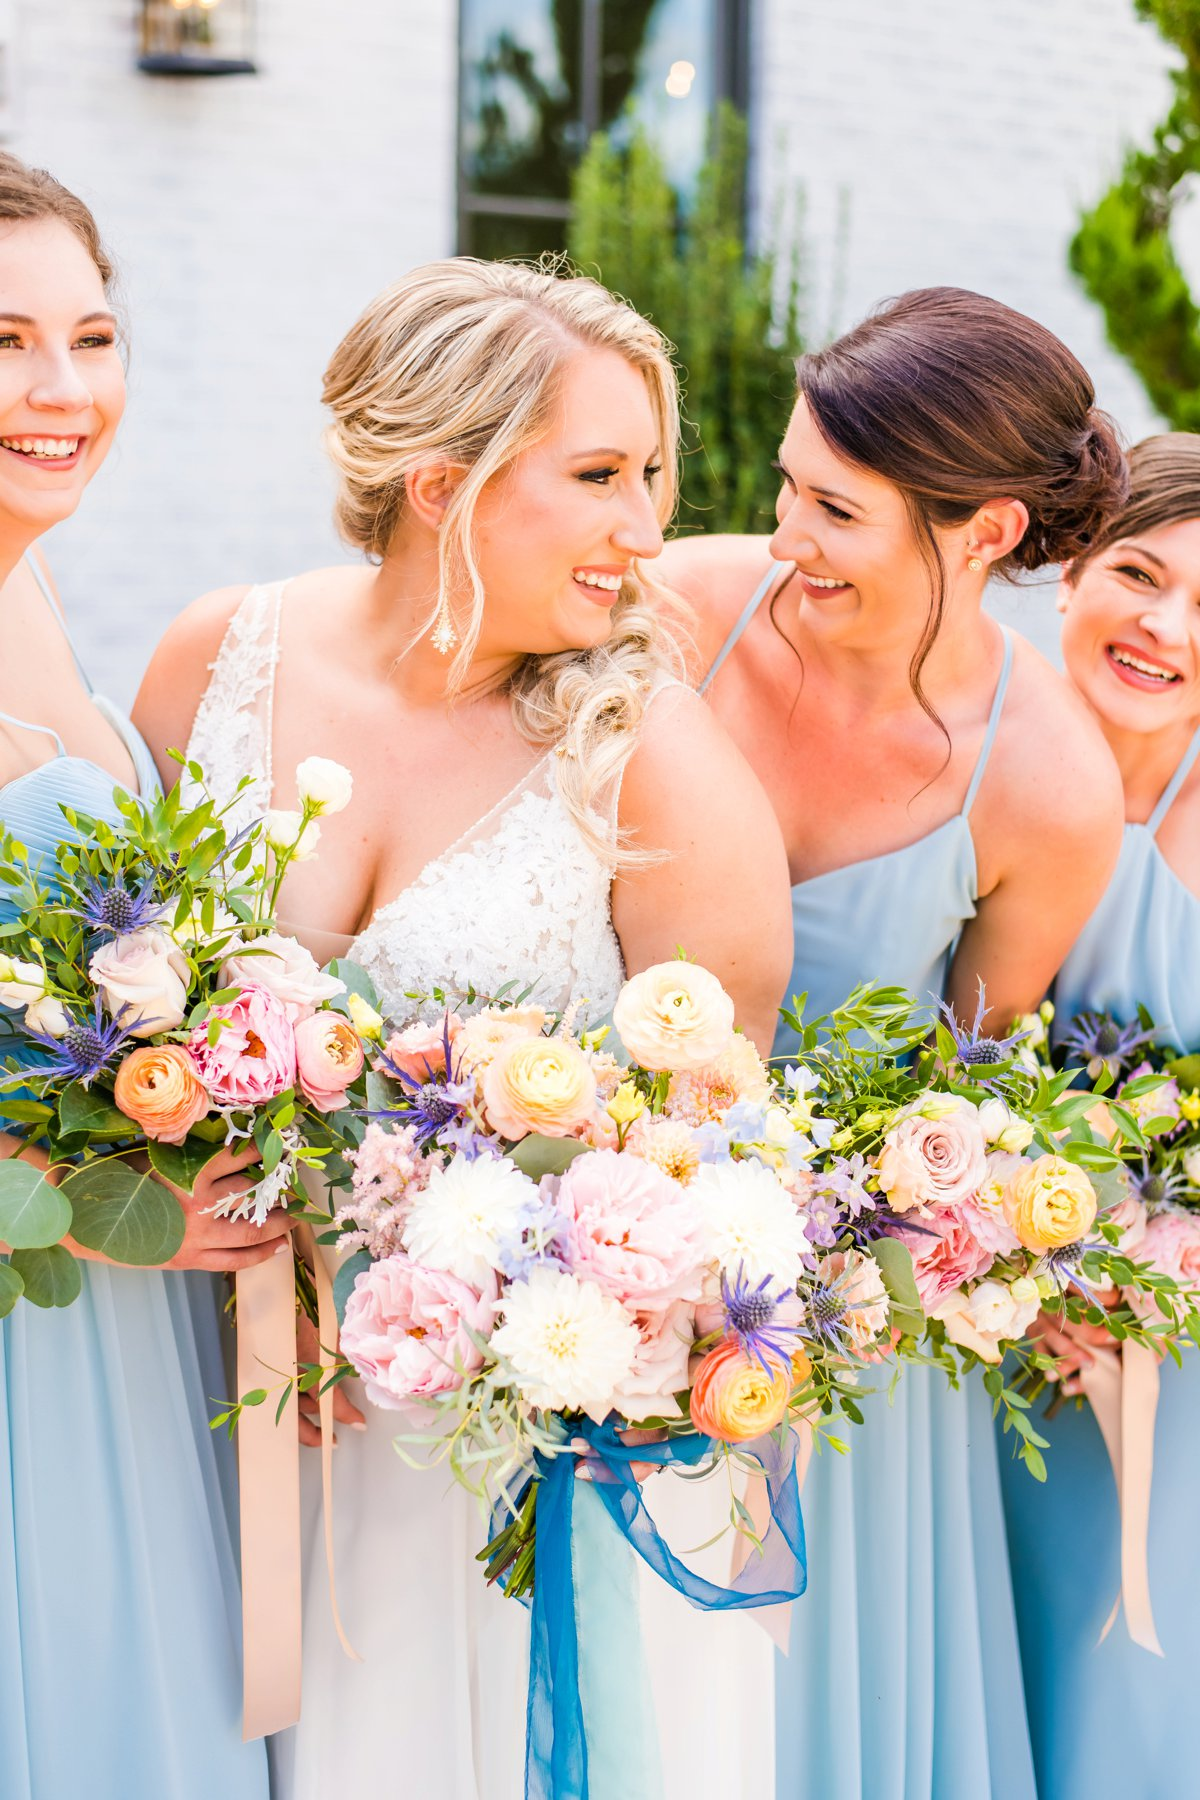 A Colorful Outdoor North Carolina Wedding via TheELD.com